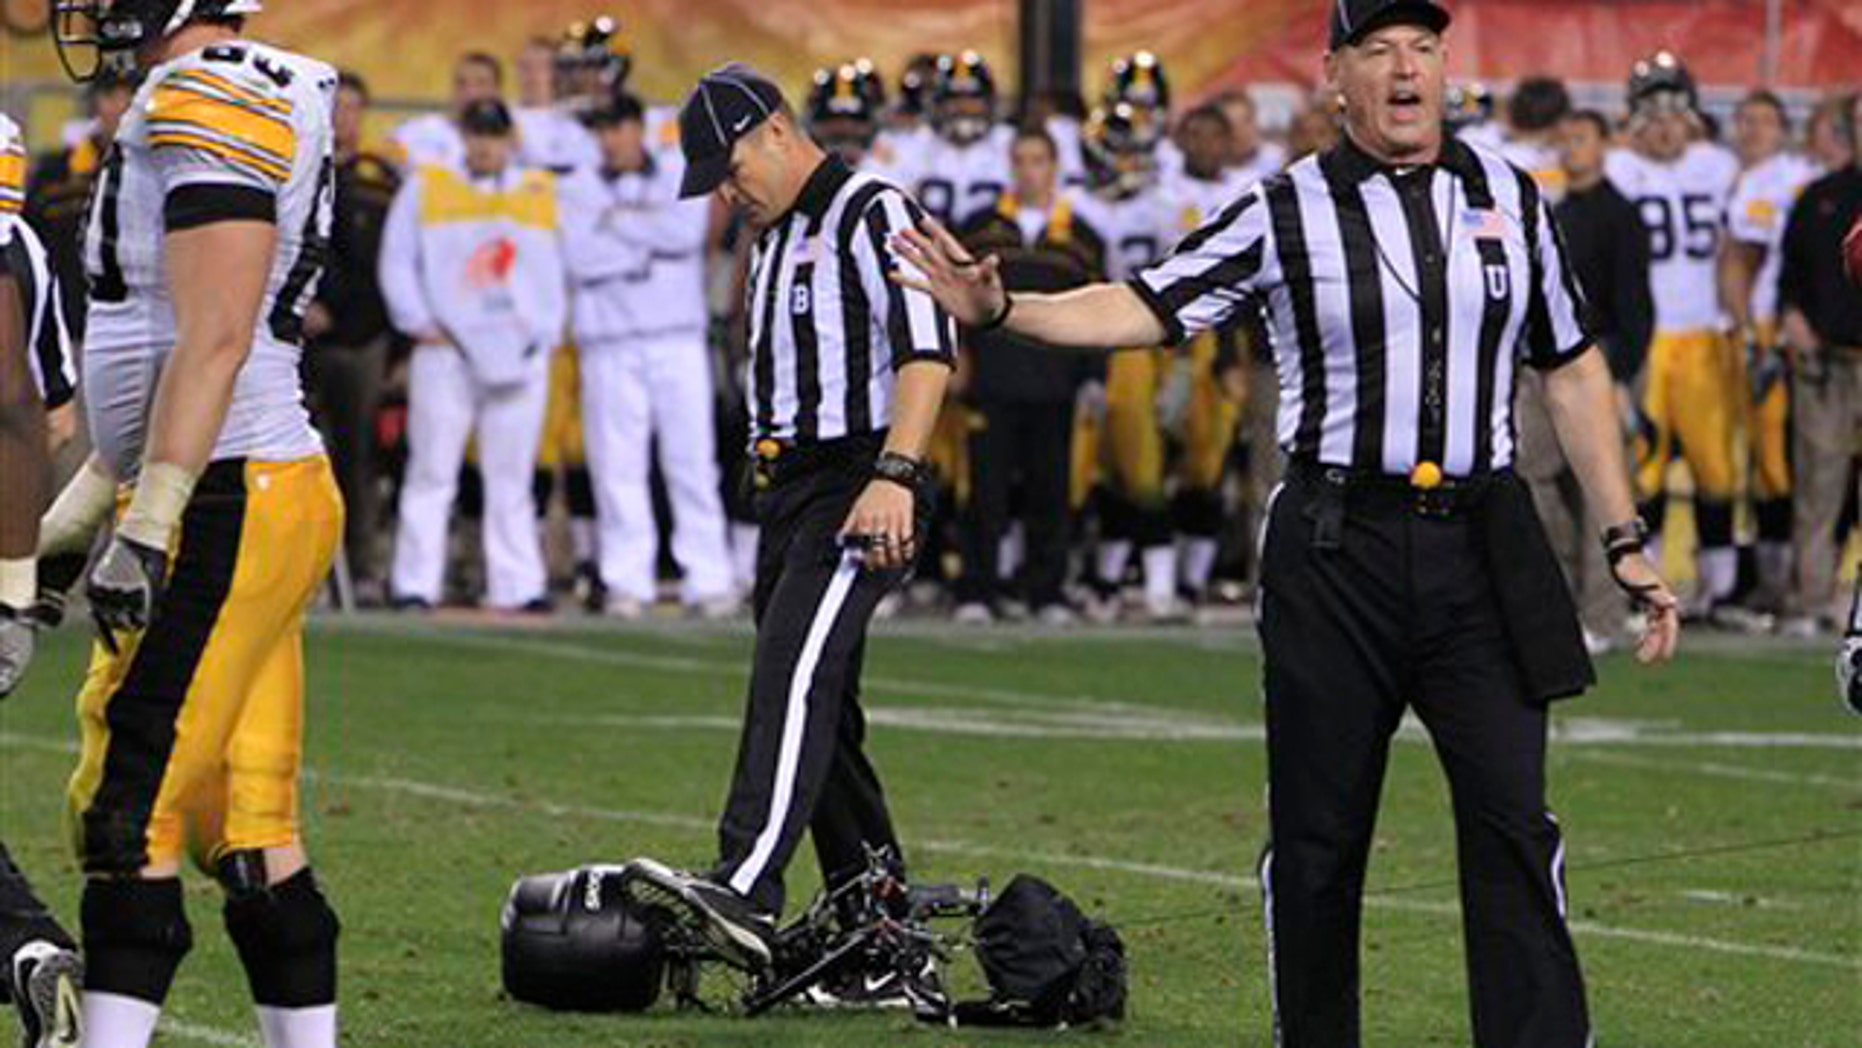 Umpire Tim Schroeder, right, keeps players away as back judge William Robinson kicks a network overhead television camera after it crashed to the field during the fourth quarter in the Insight Bowl NCAA college football game Friday, Dec. 30, 2011, in Tempe, Ariz.  Oklahoma defeated Iowa 31-14.(AP Photo/Ross D. Franklin)